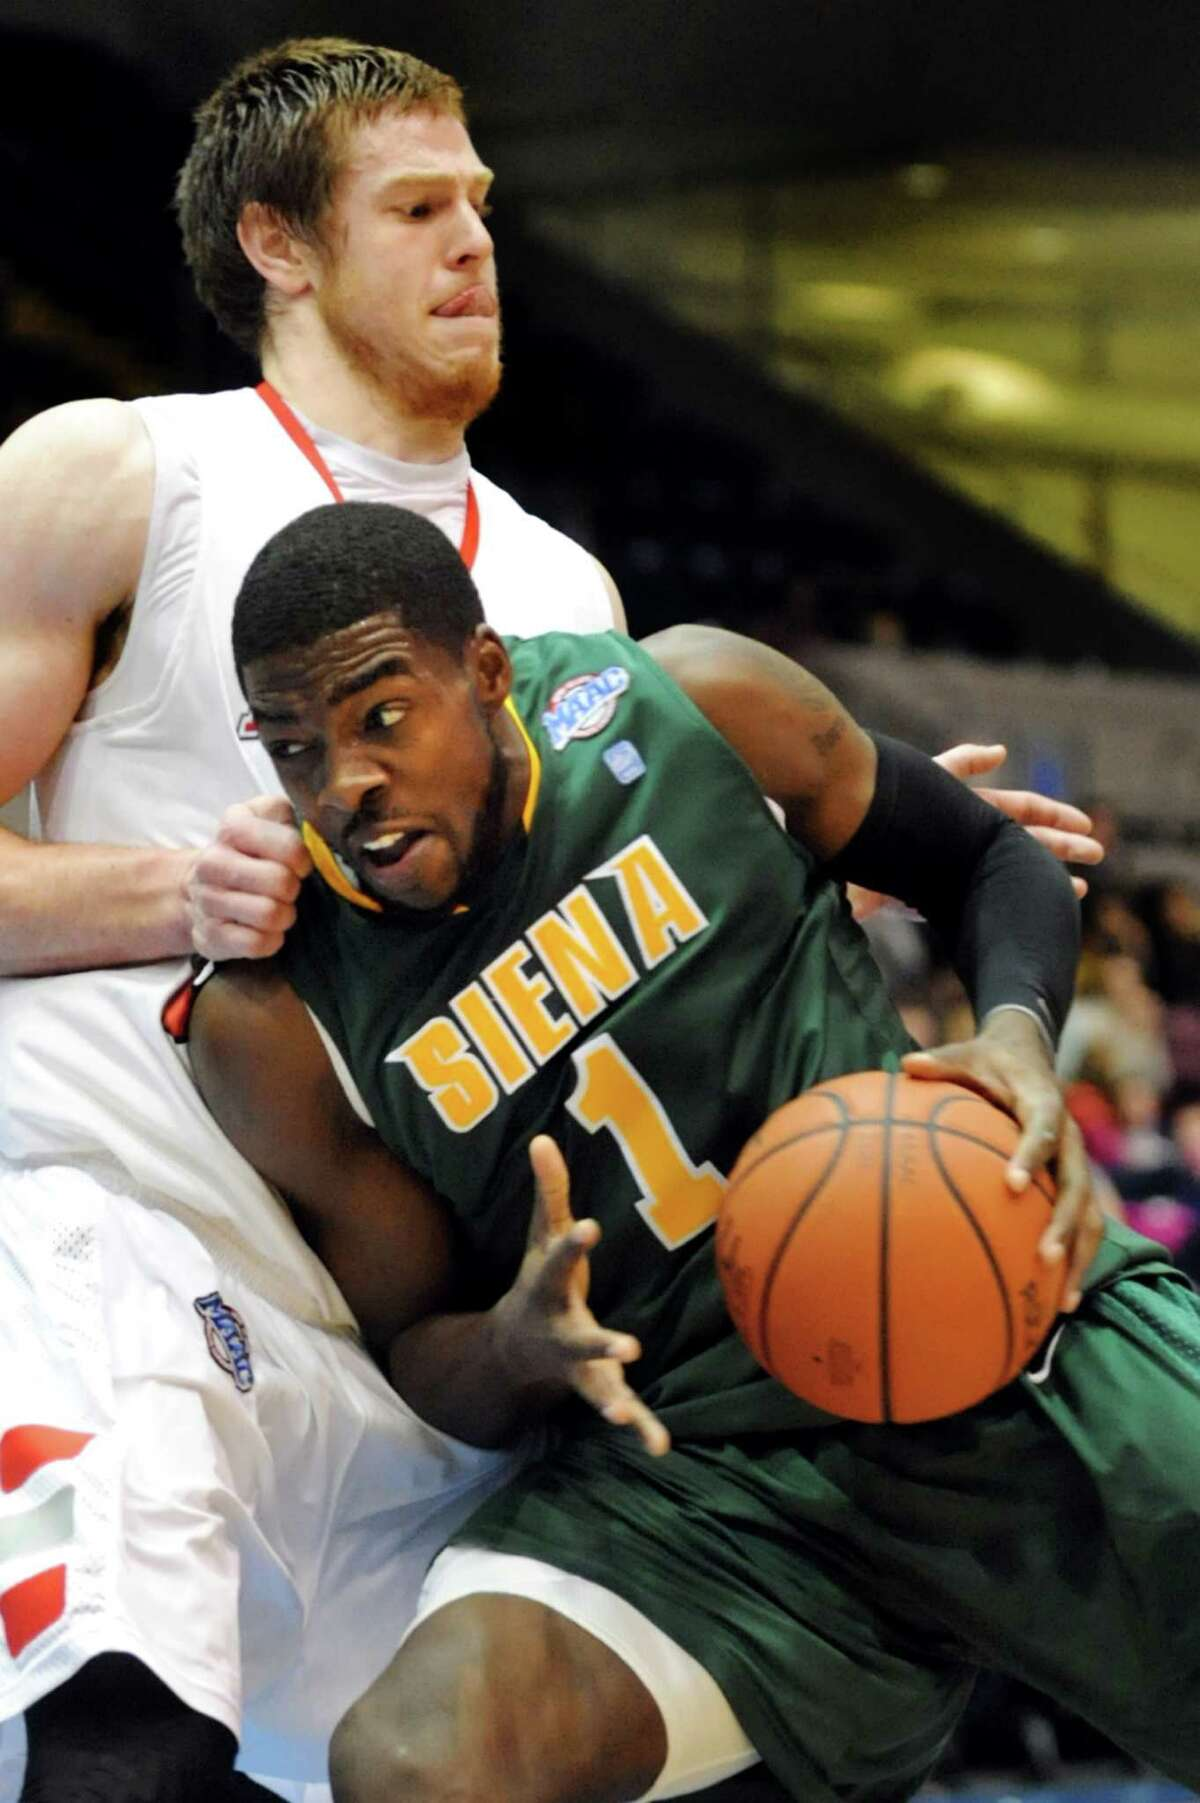 Siena's O.D. Anosike (1), right, tries to get past Marist's Adam Kemp (50) during their first round MAAC Championship basketball game on Friday, March 8, 2013, at MassMutual Center in Springfield, Mass. (Cindy Schultz / Times Union)